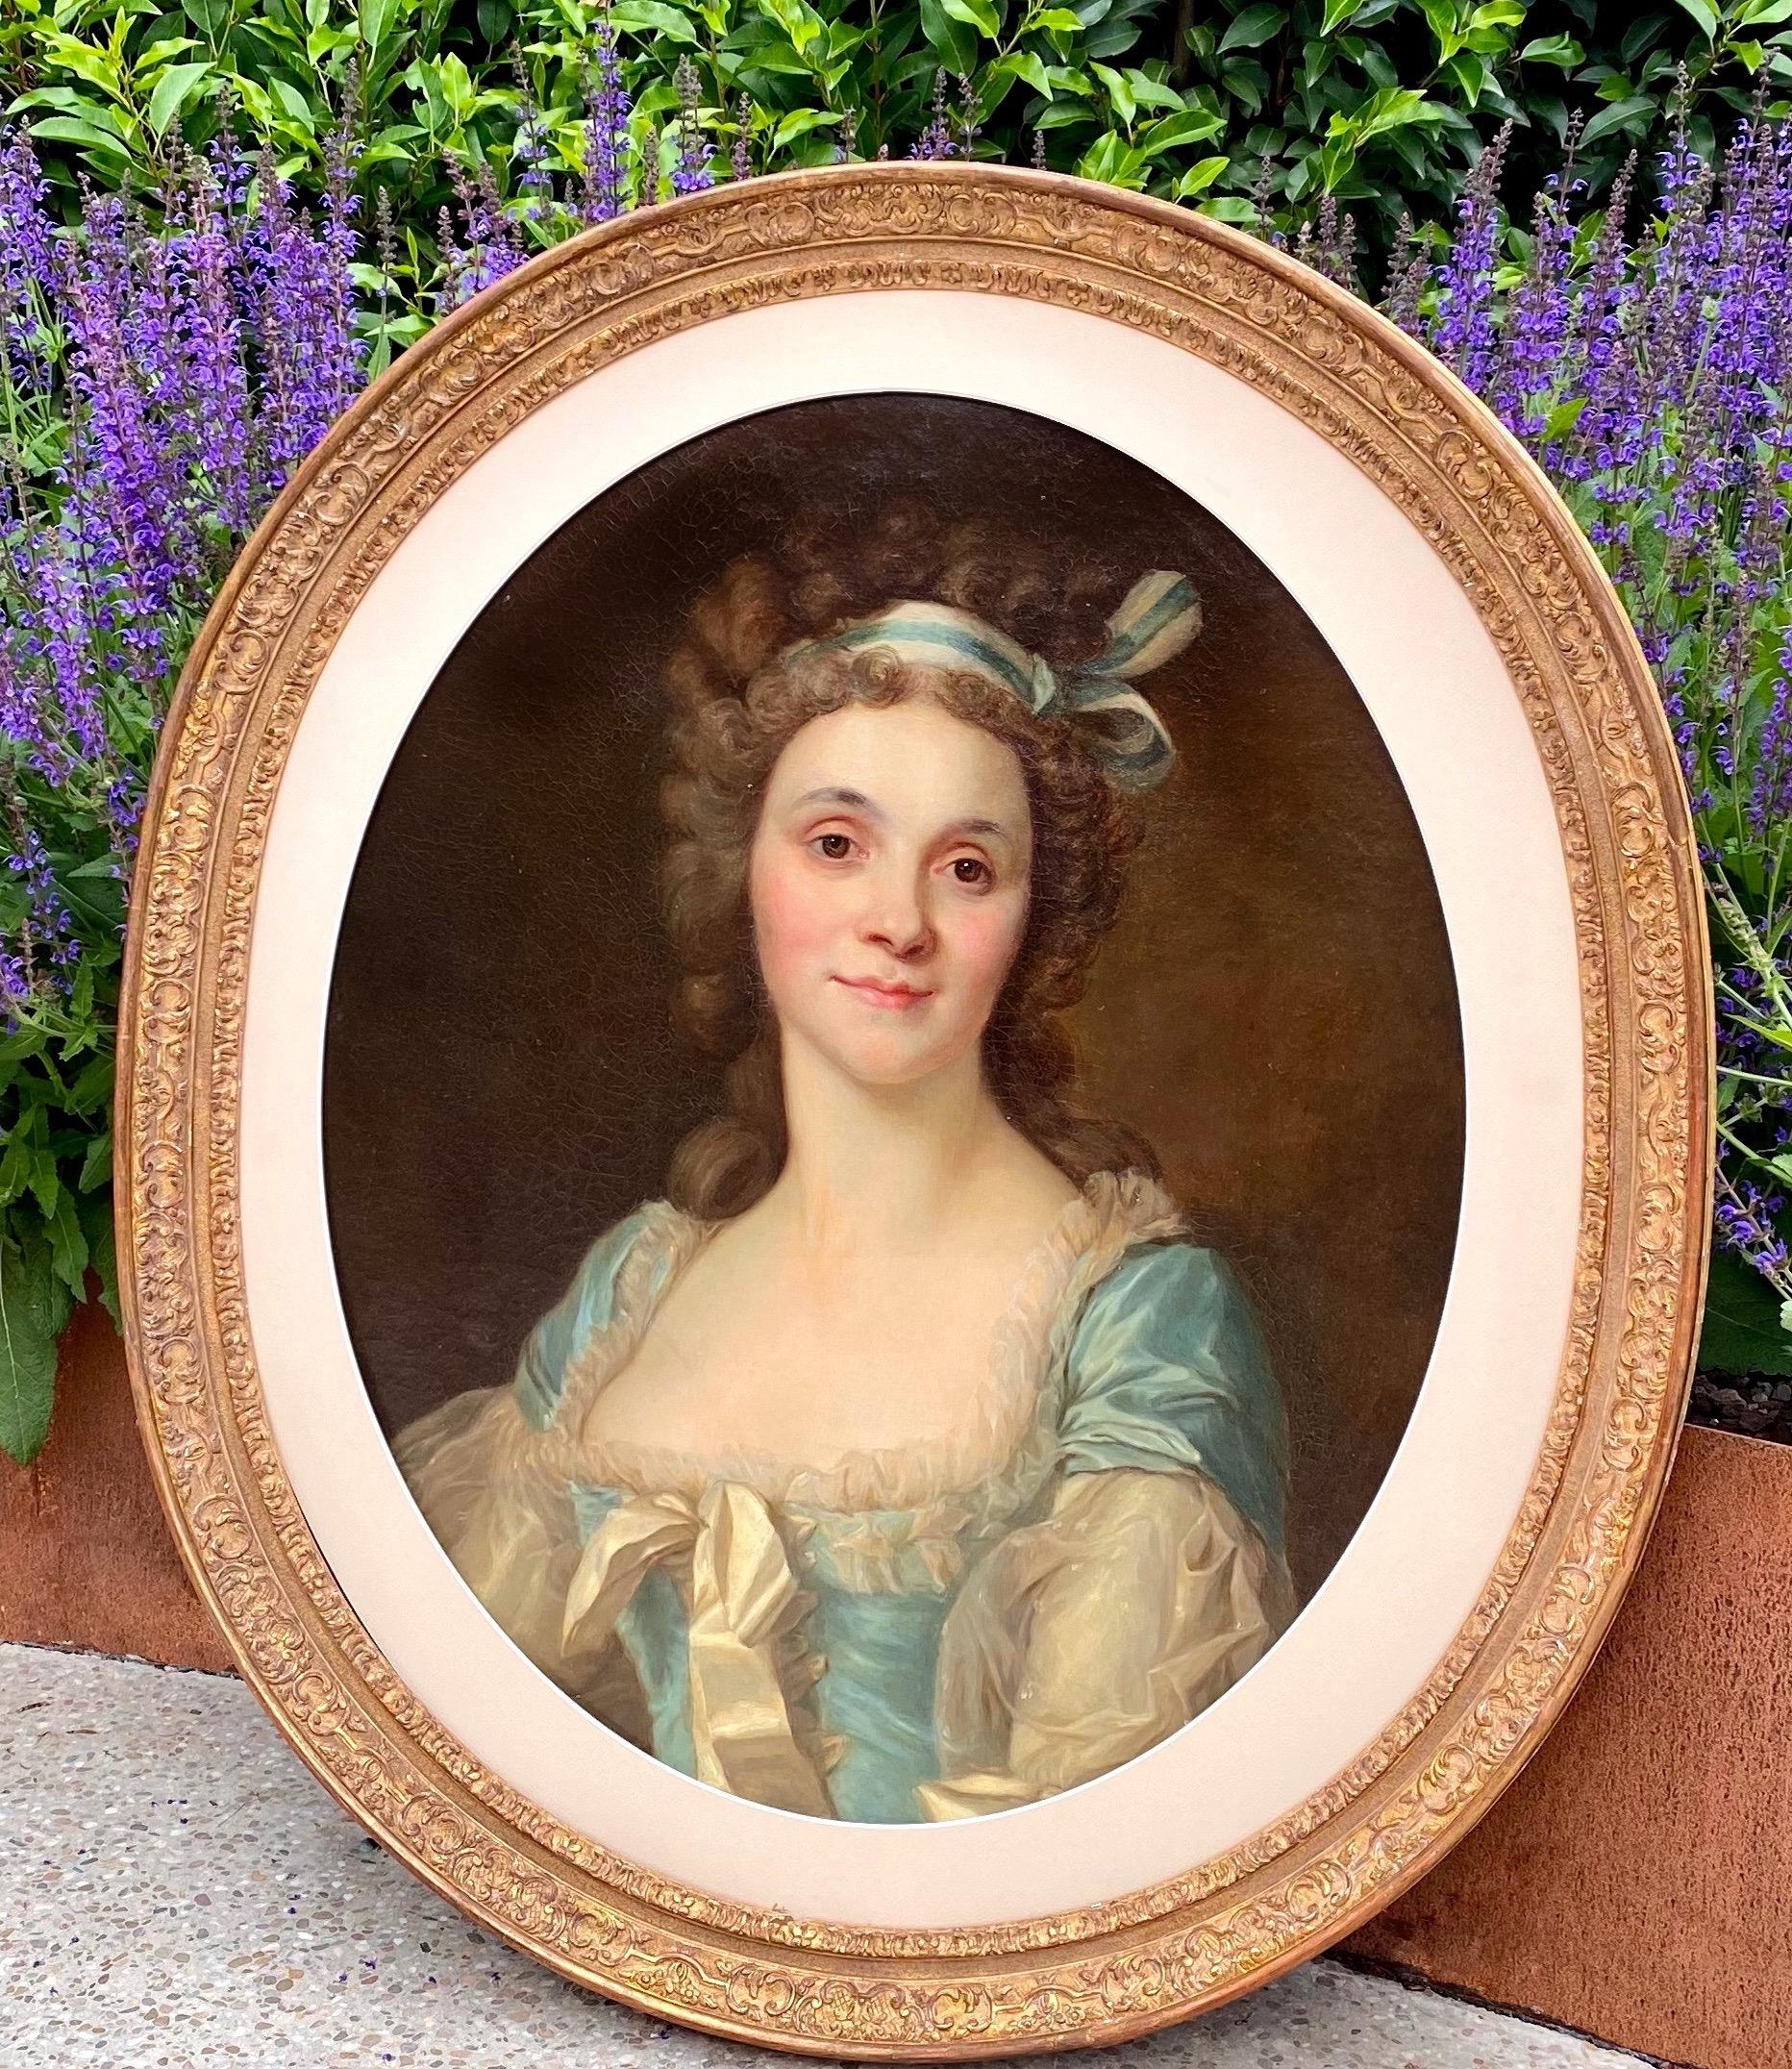 18th century French Rococo Portrait painting of a noble lady - young princess